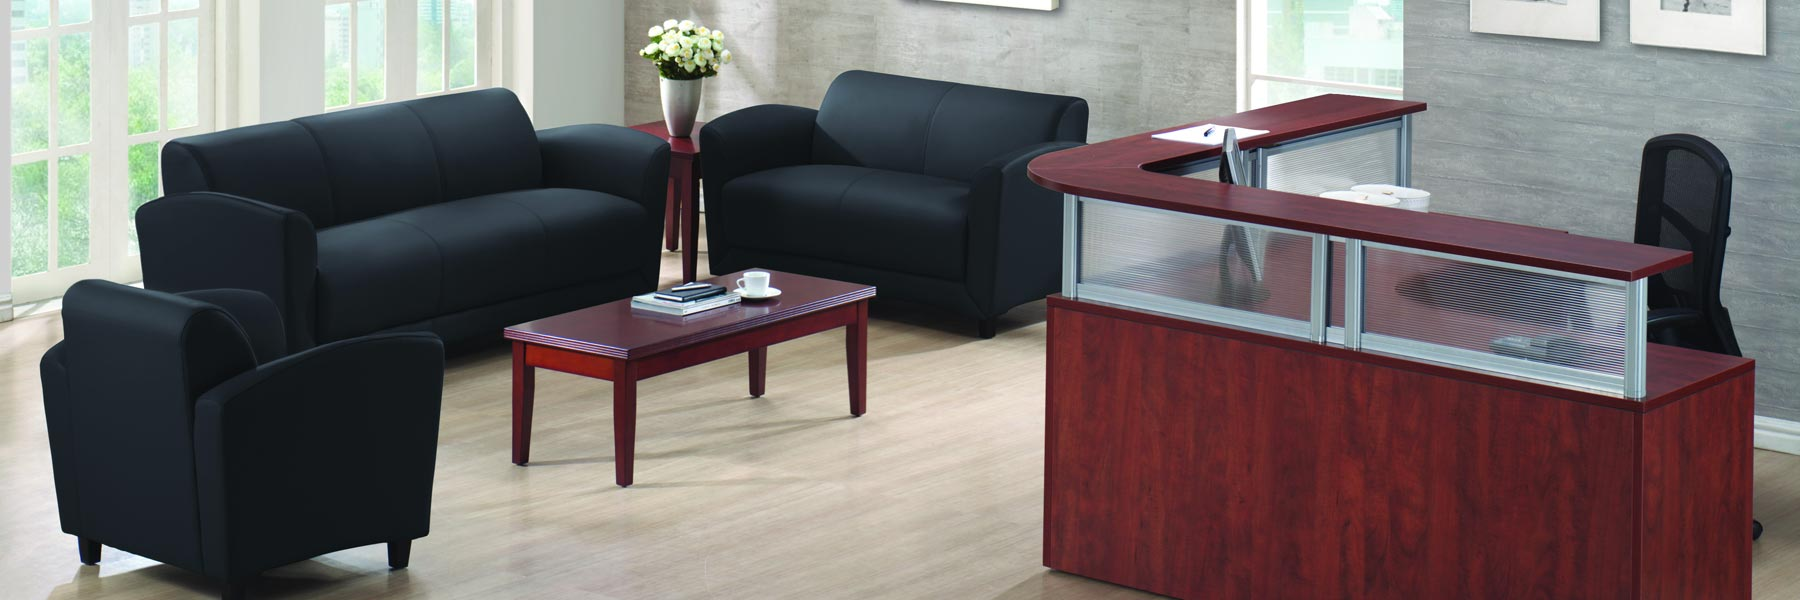 Office chair for sale jhb - Office Reception Furniture